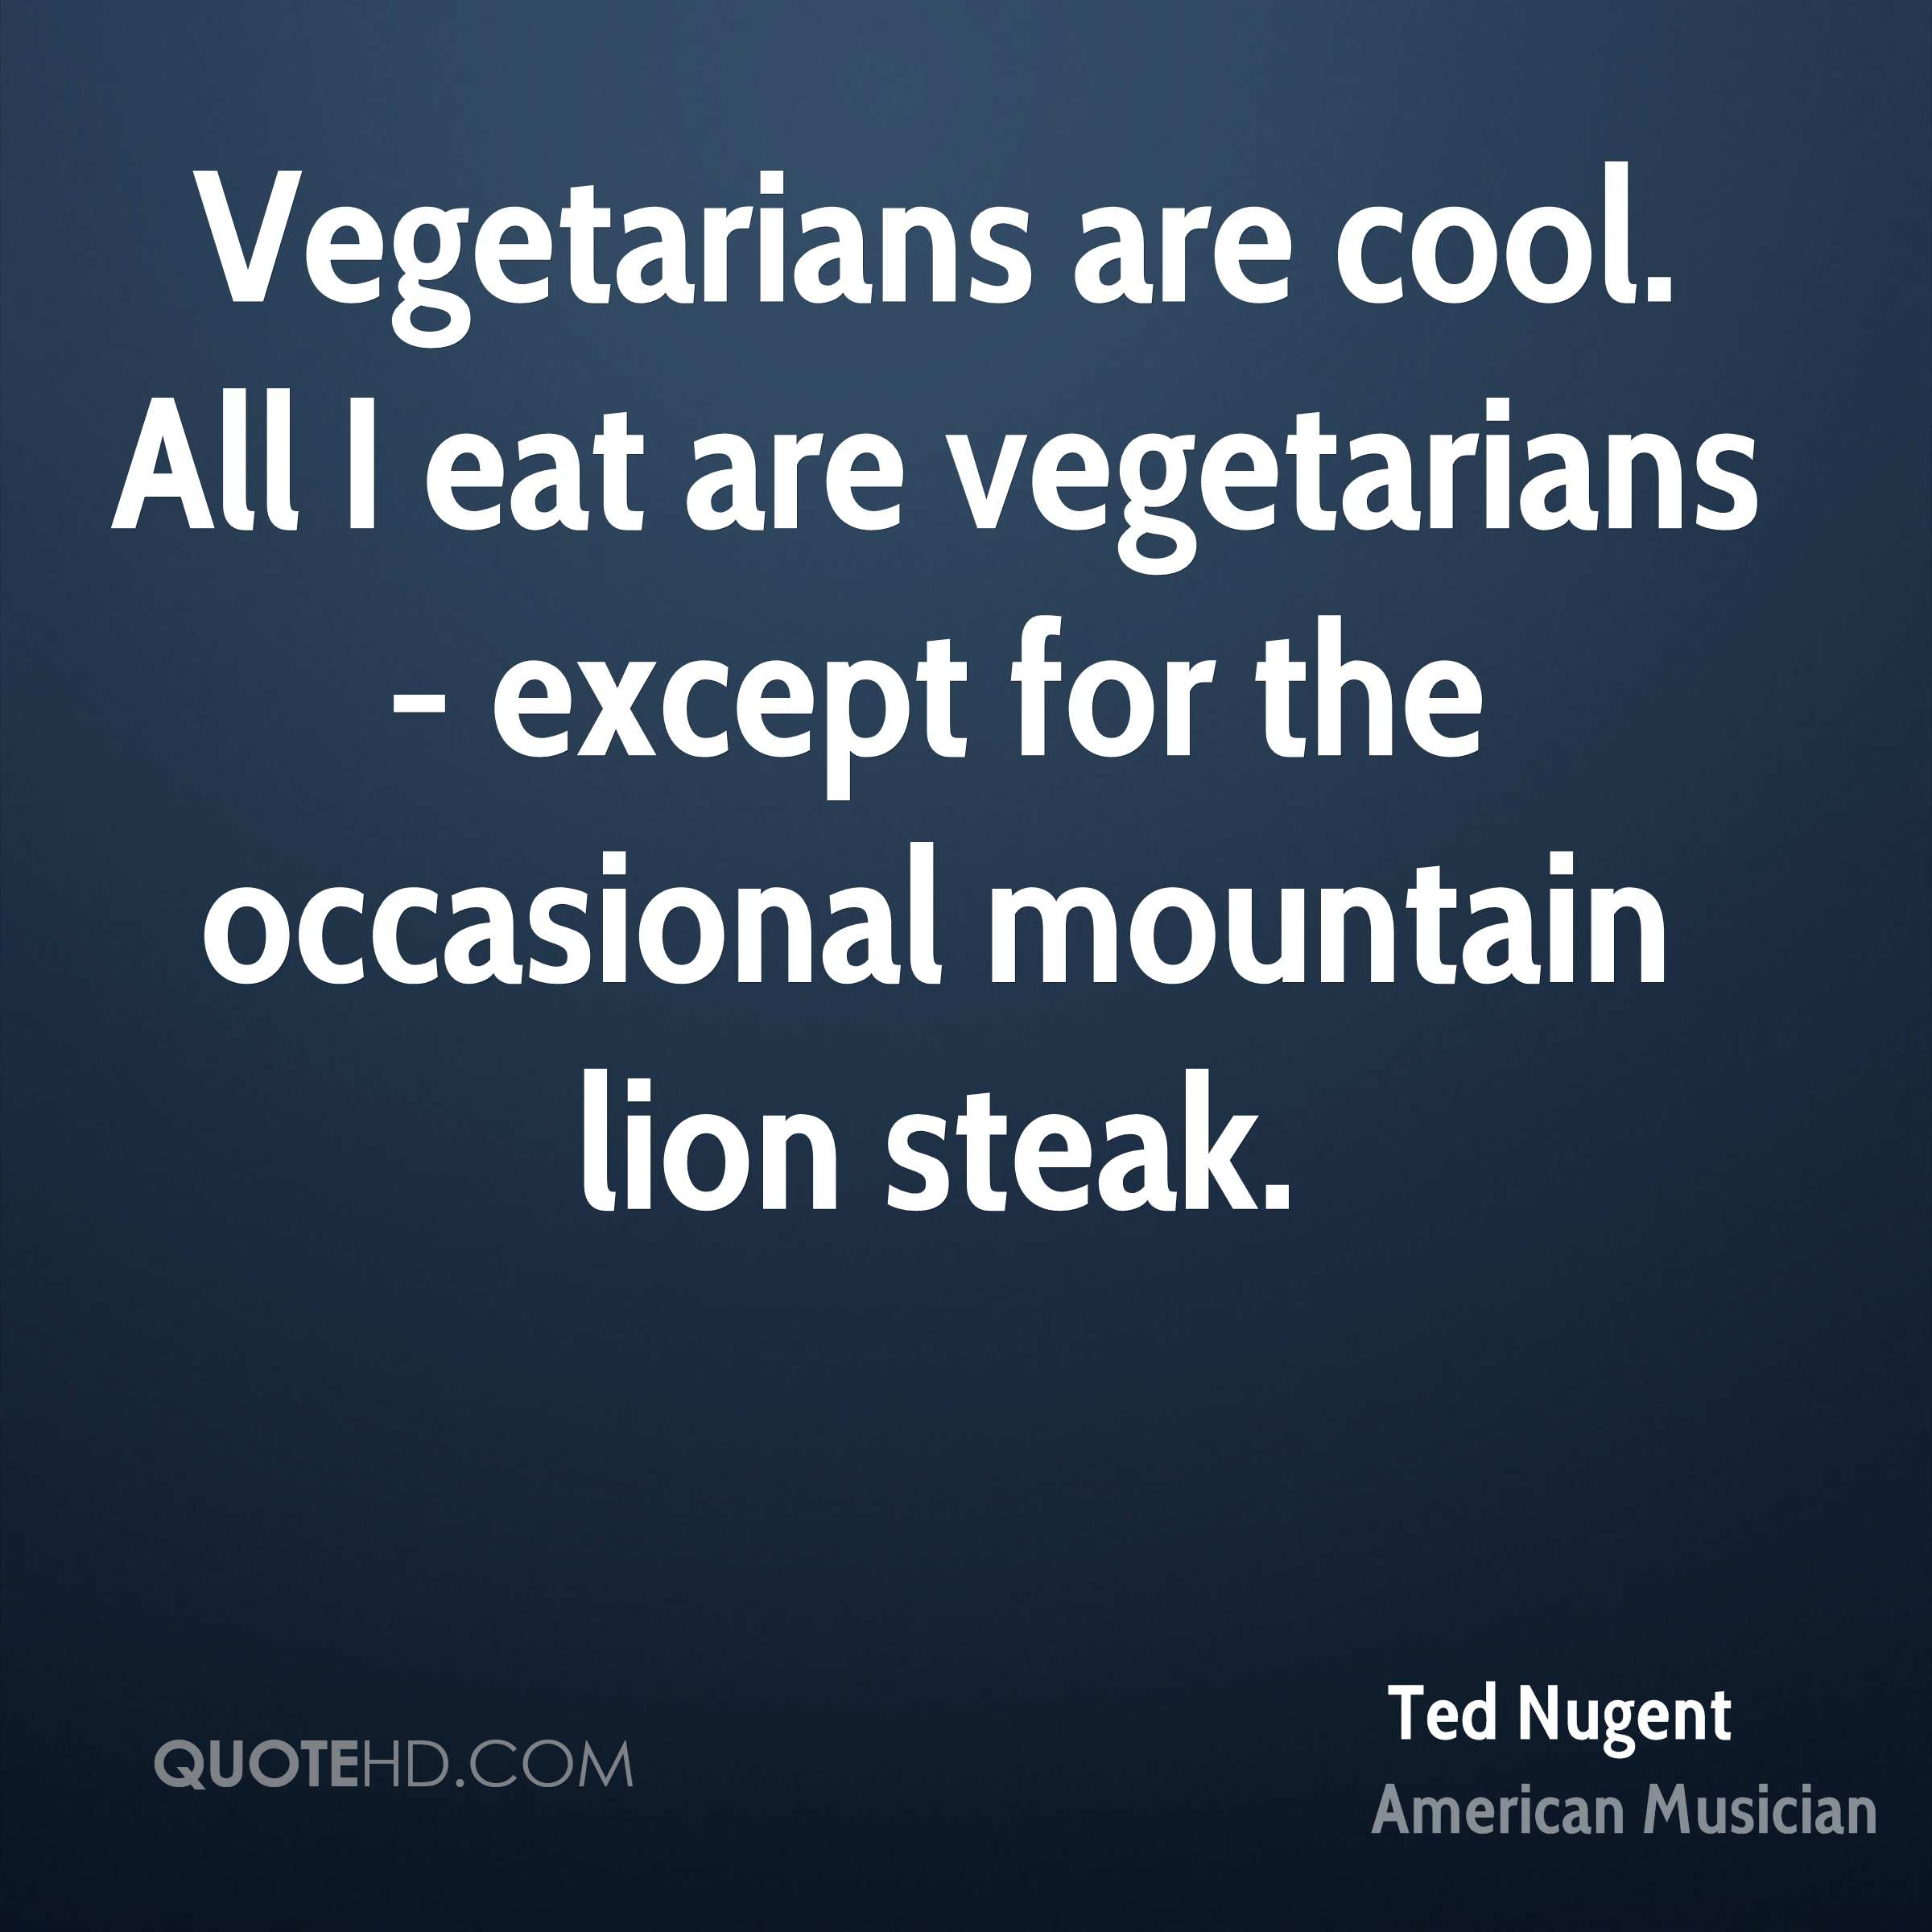 Vegetarians are cool. All I eat are vegetarians - except for the occasional mountain lion steak.